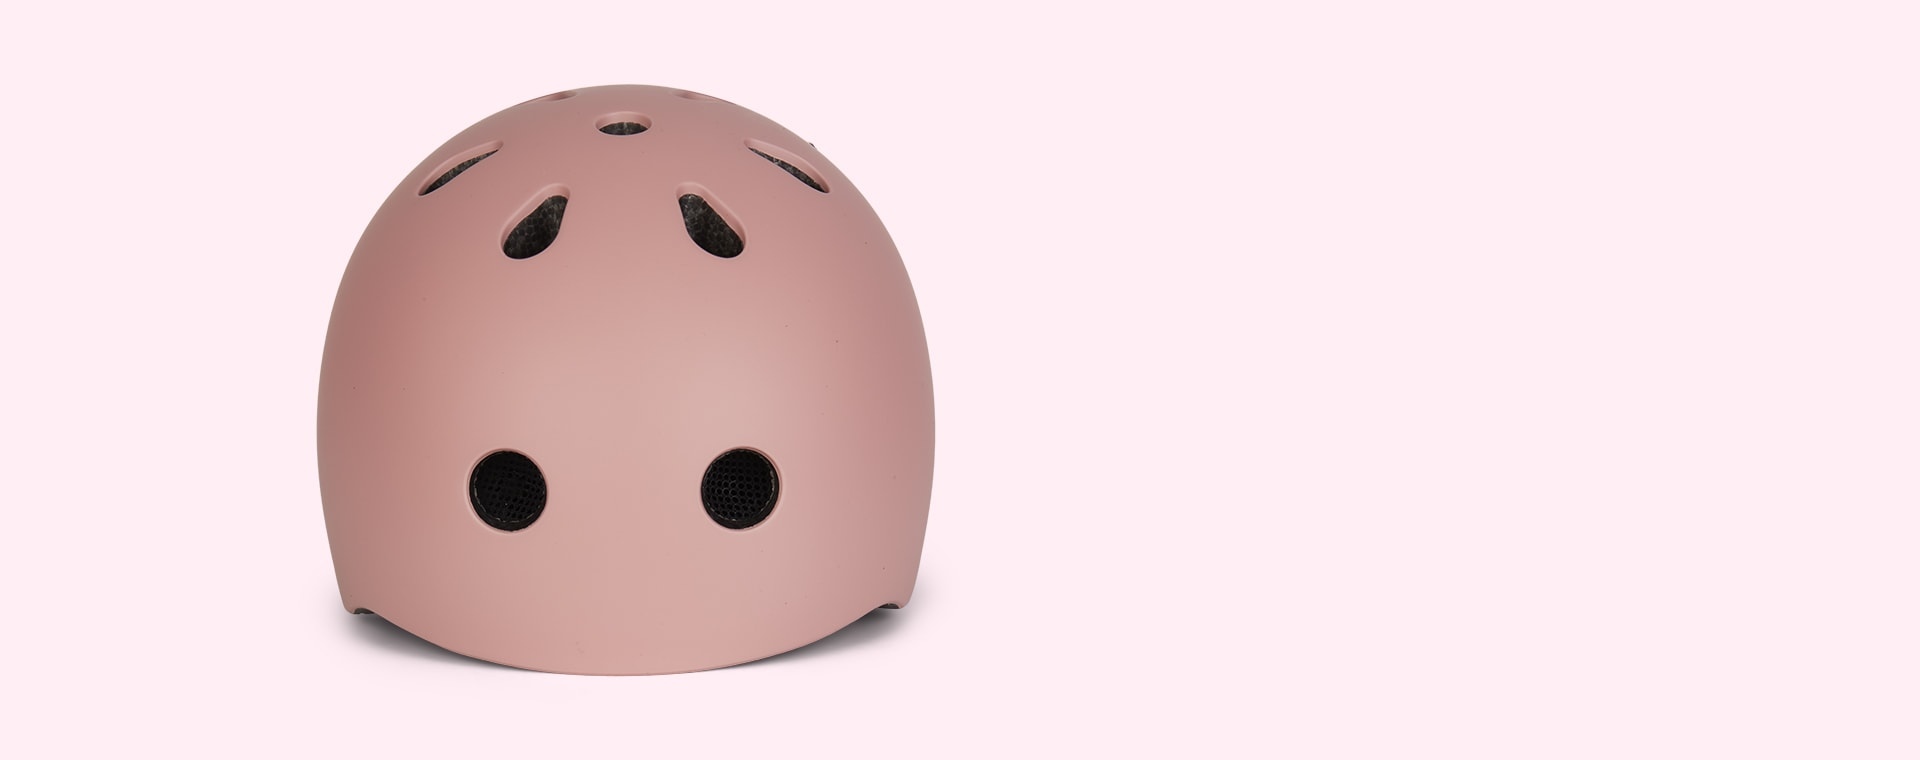 Rose Scoot & Ride Helmet